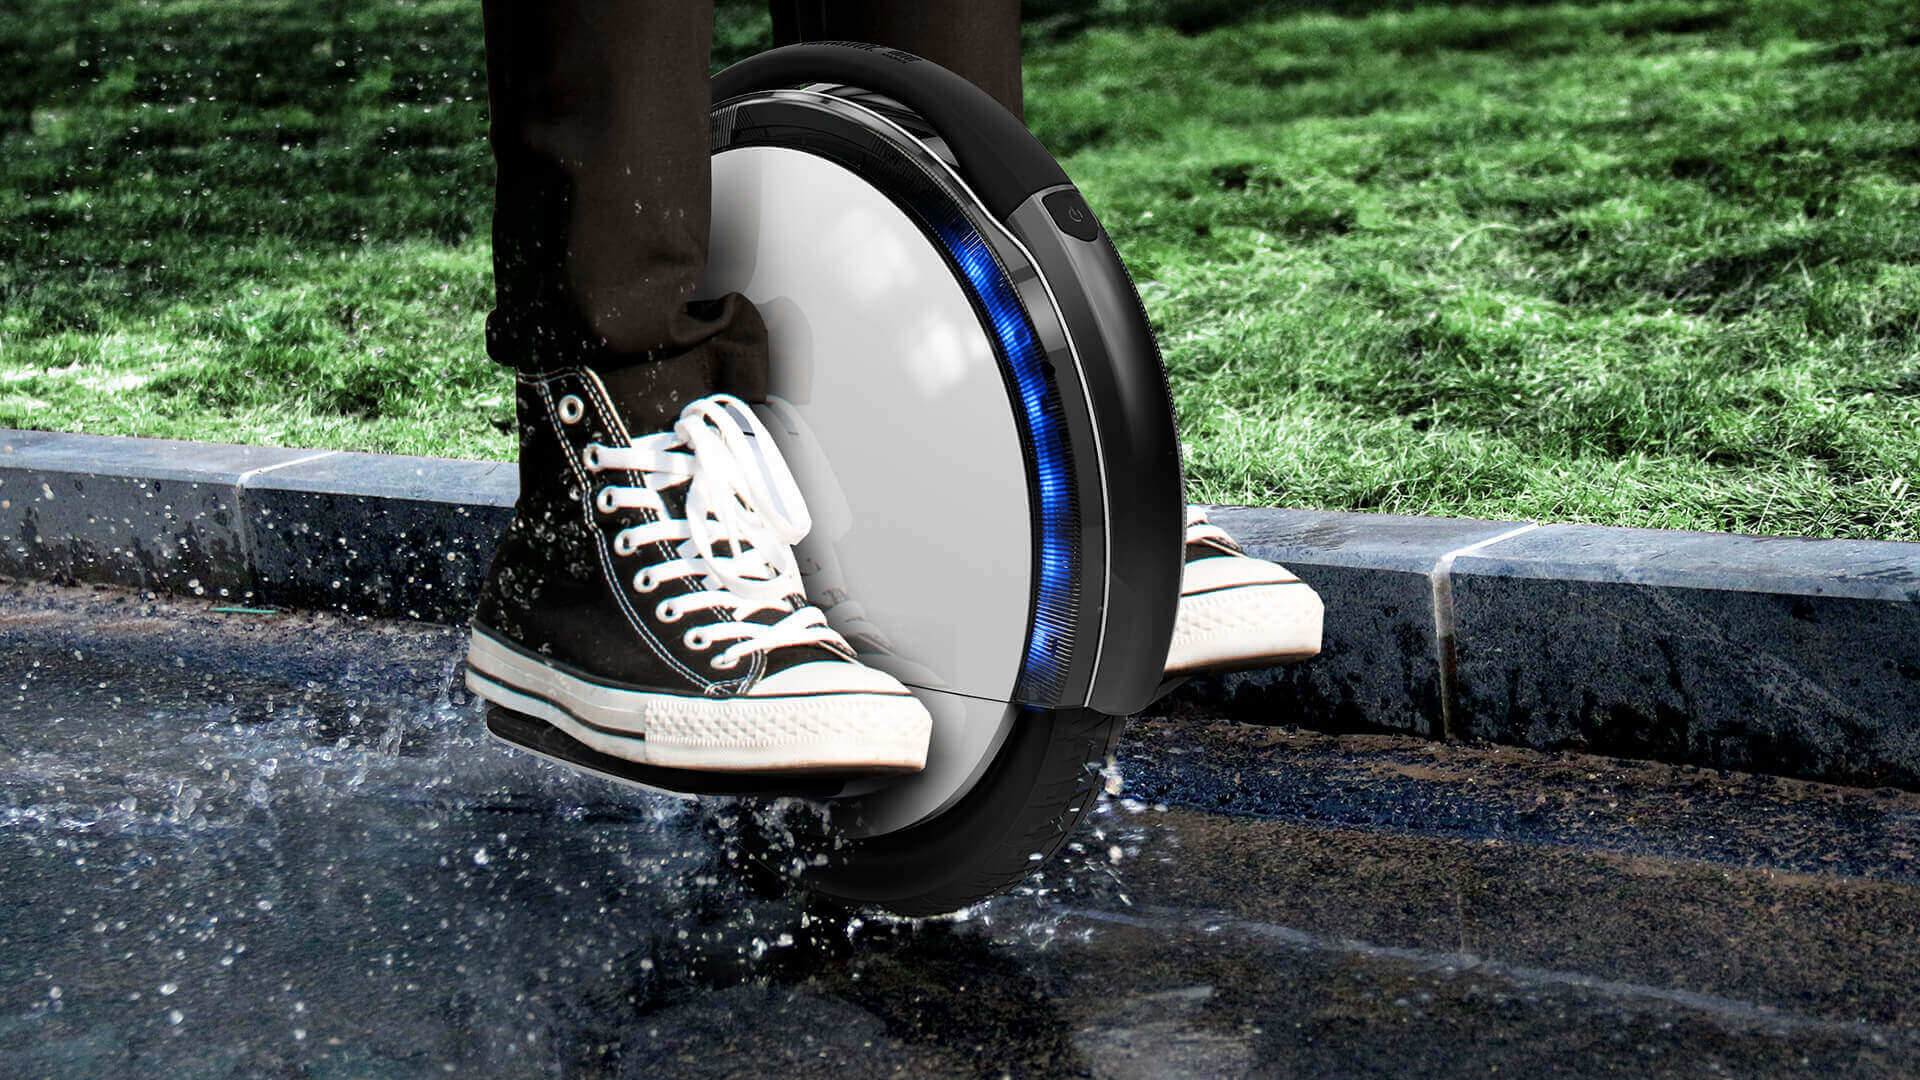 Review of Ninebot by Segway, ONE S2 - Segway Singapore